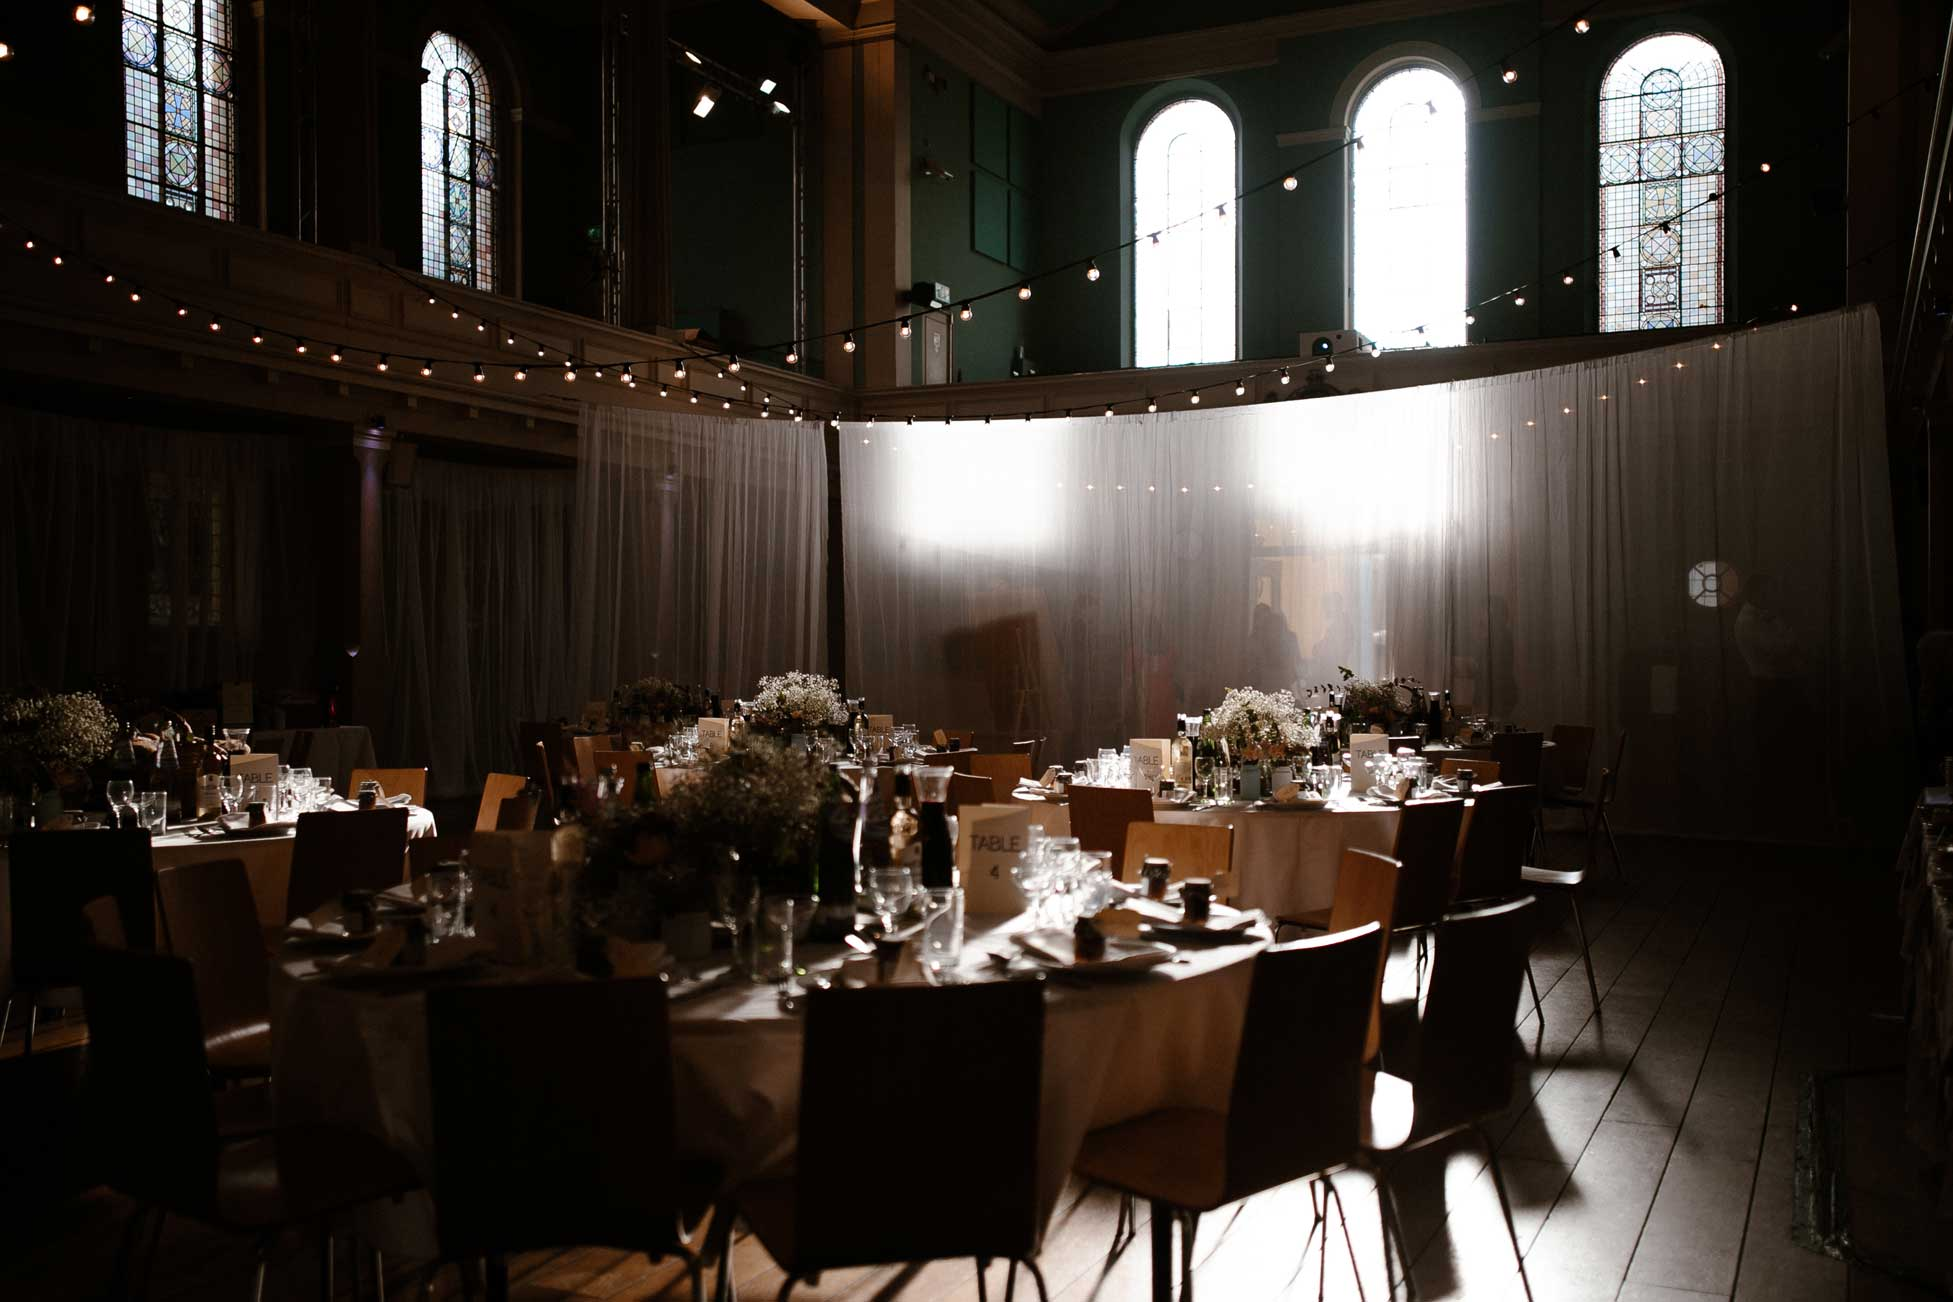 Low lit dining tables for a wedding breakfast with drapes